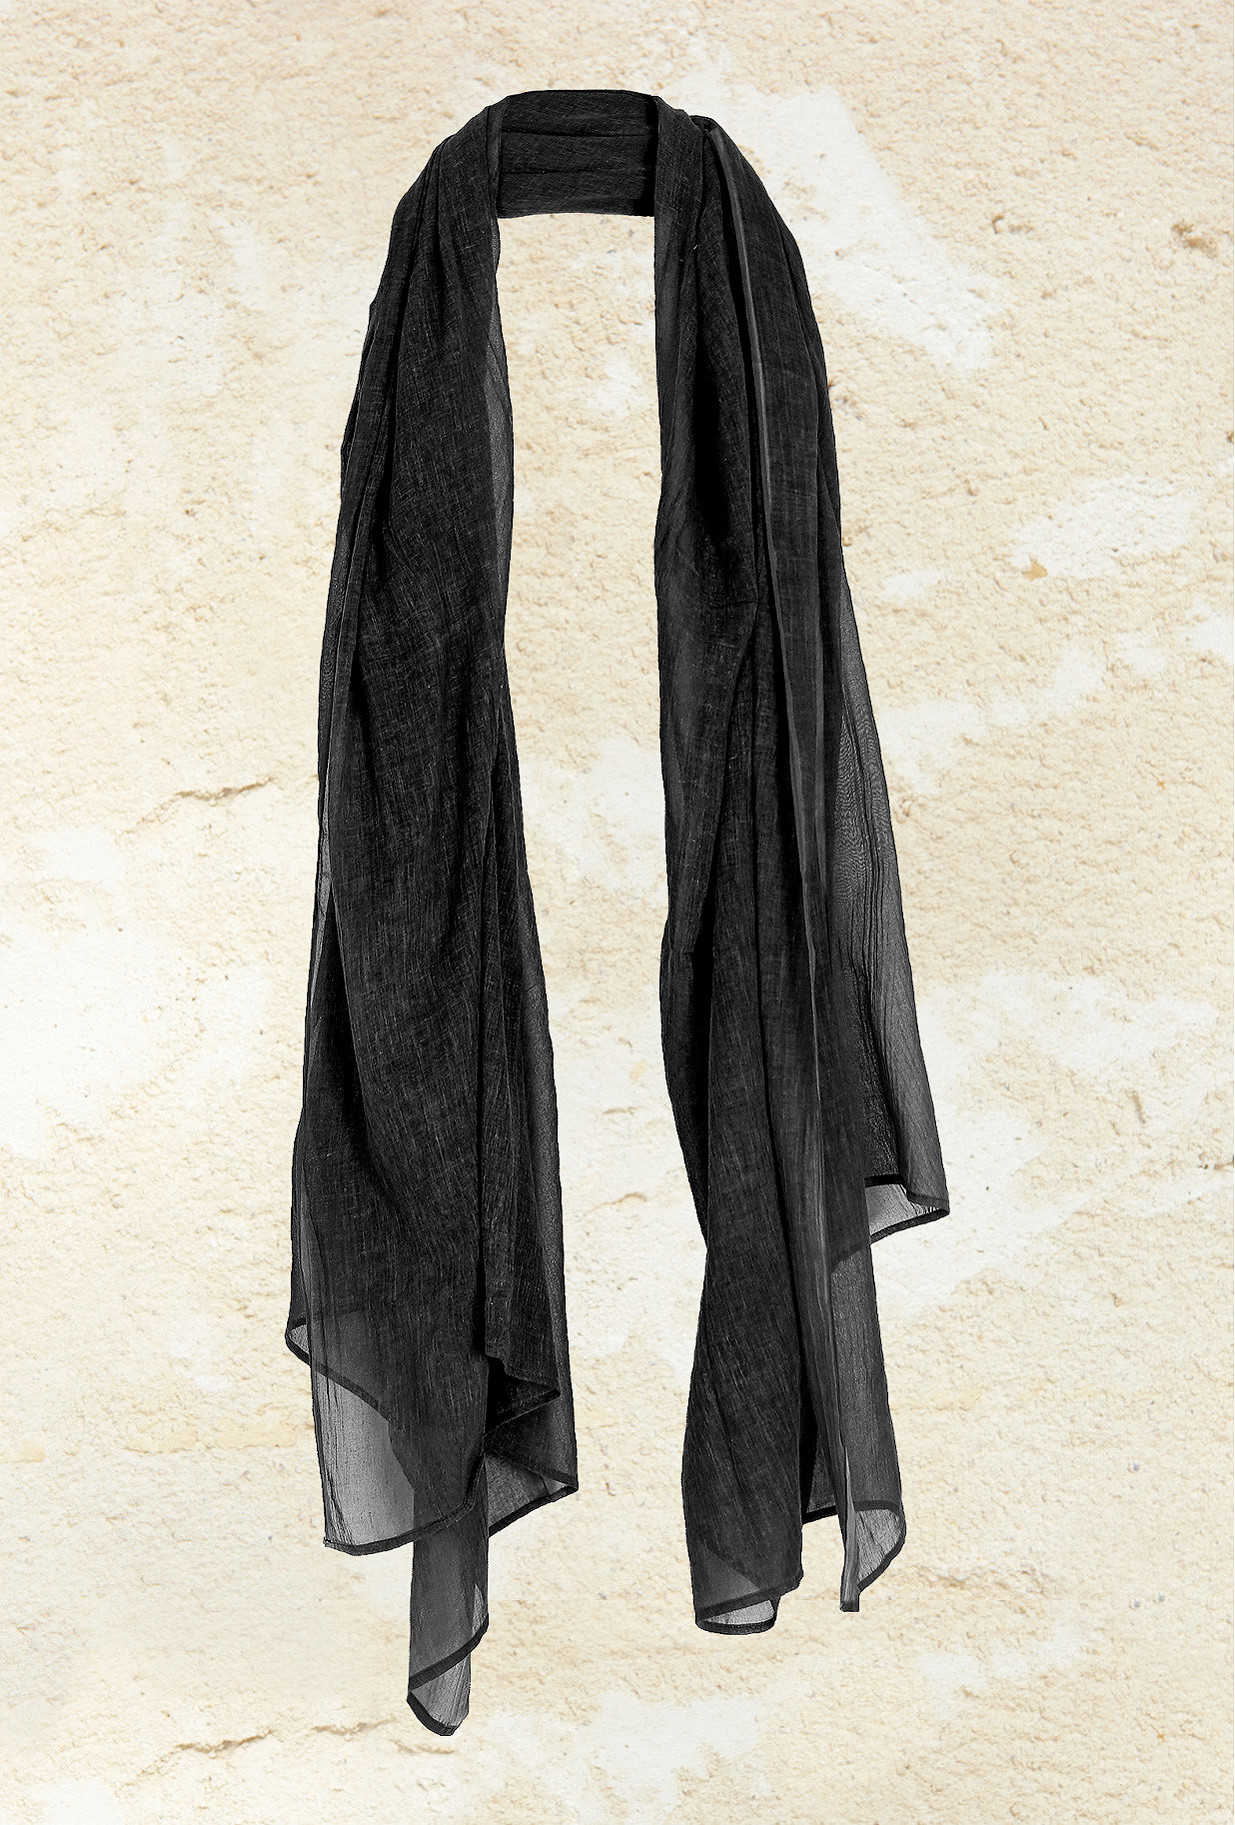 Charcoal  Scarf  Charp Mes demoiselles fashion clothes designer Paris